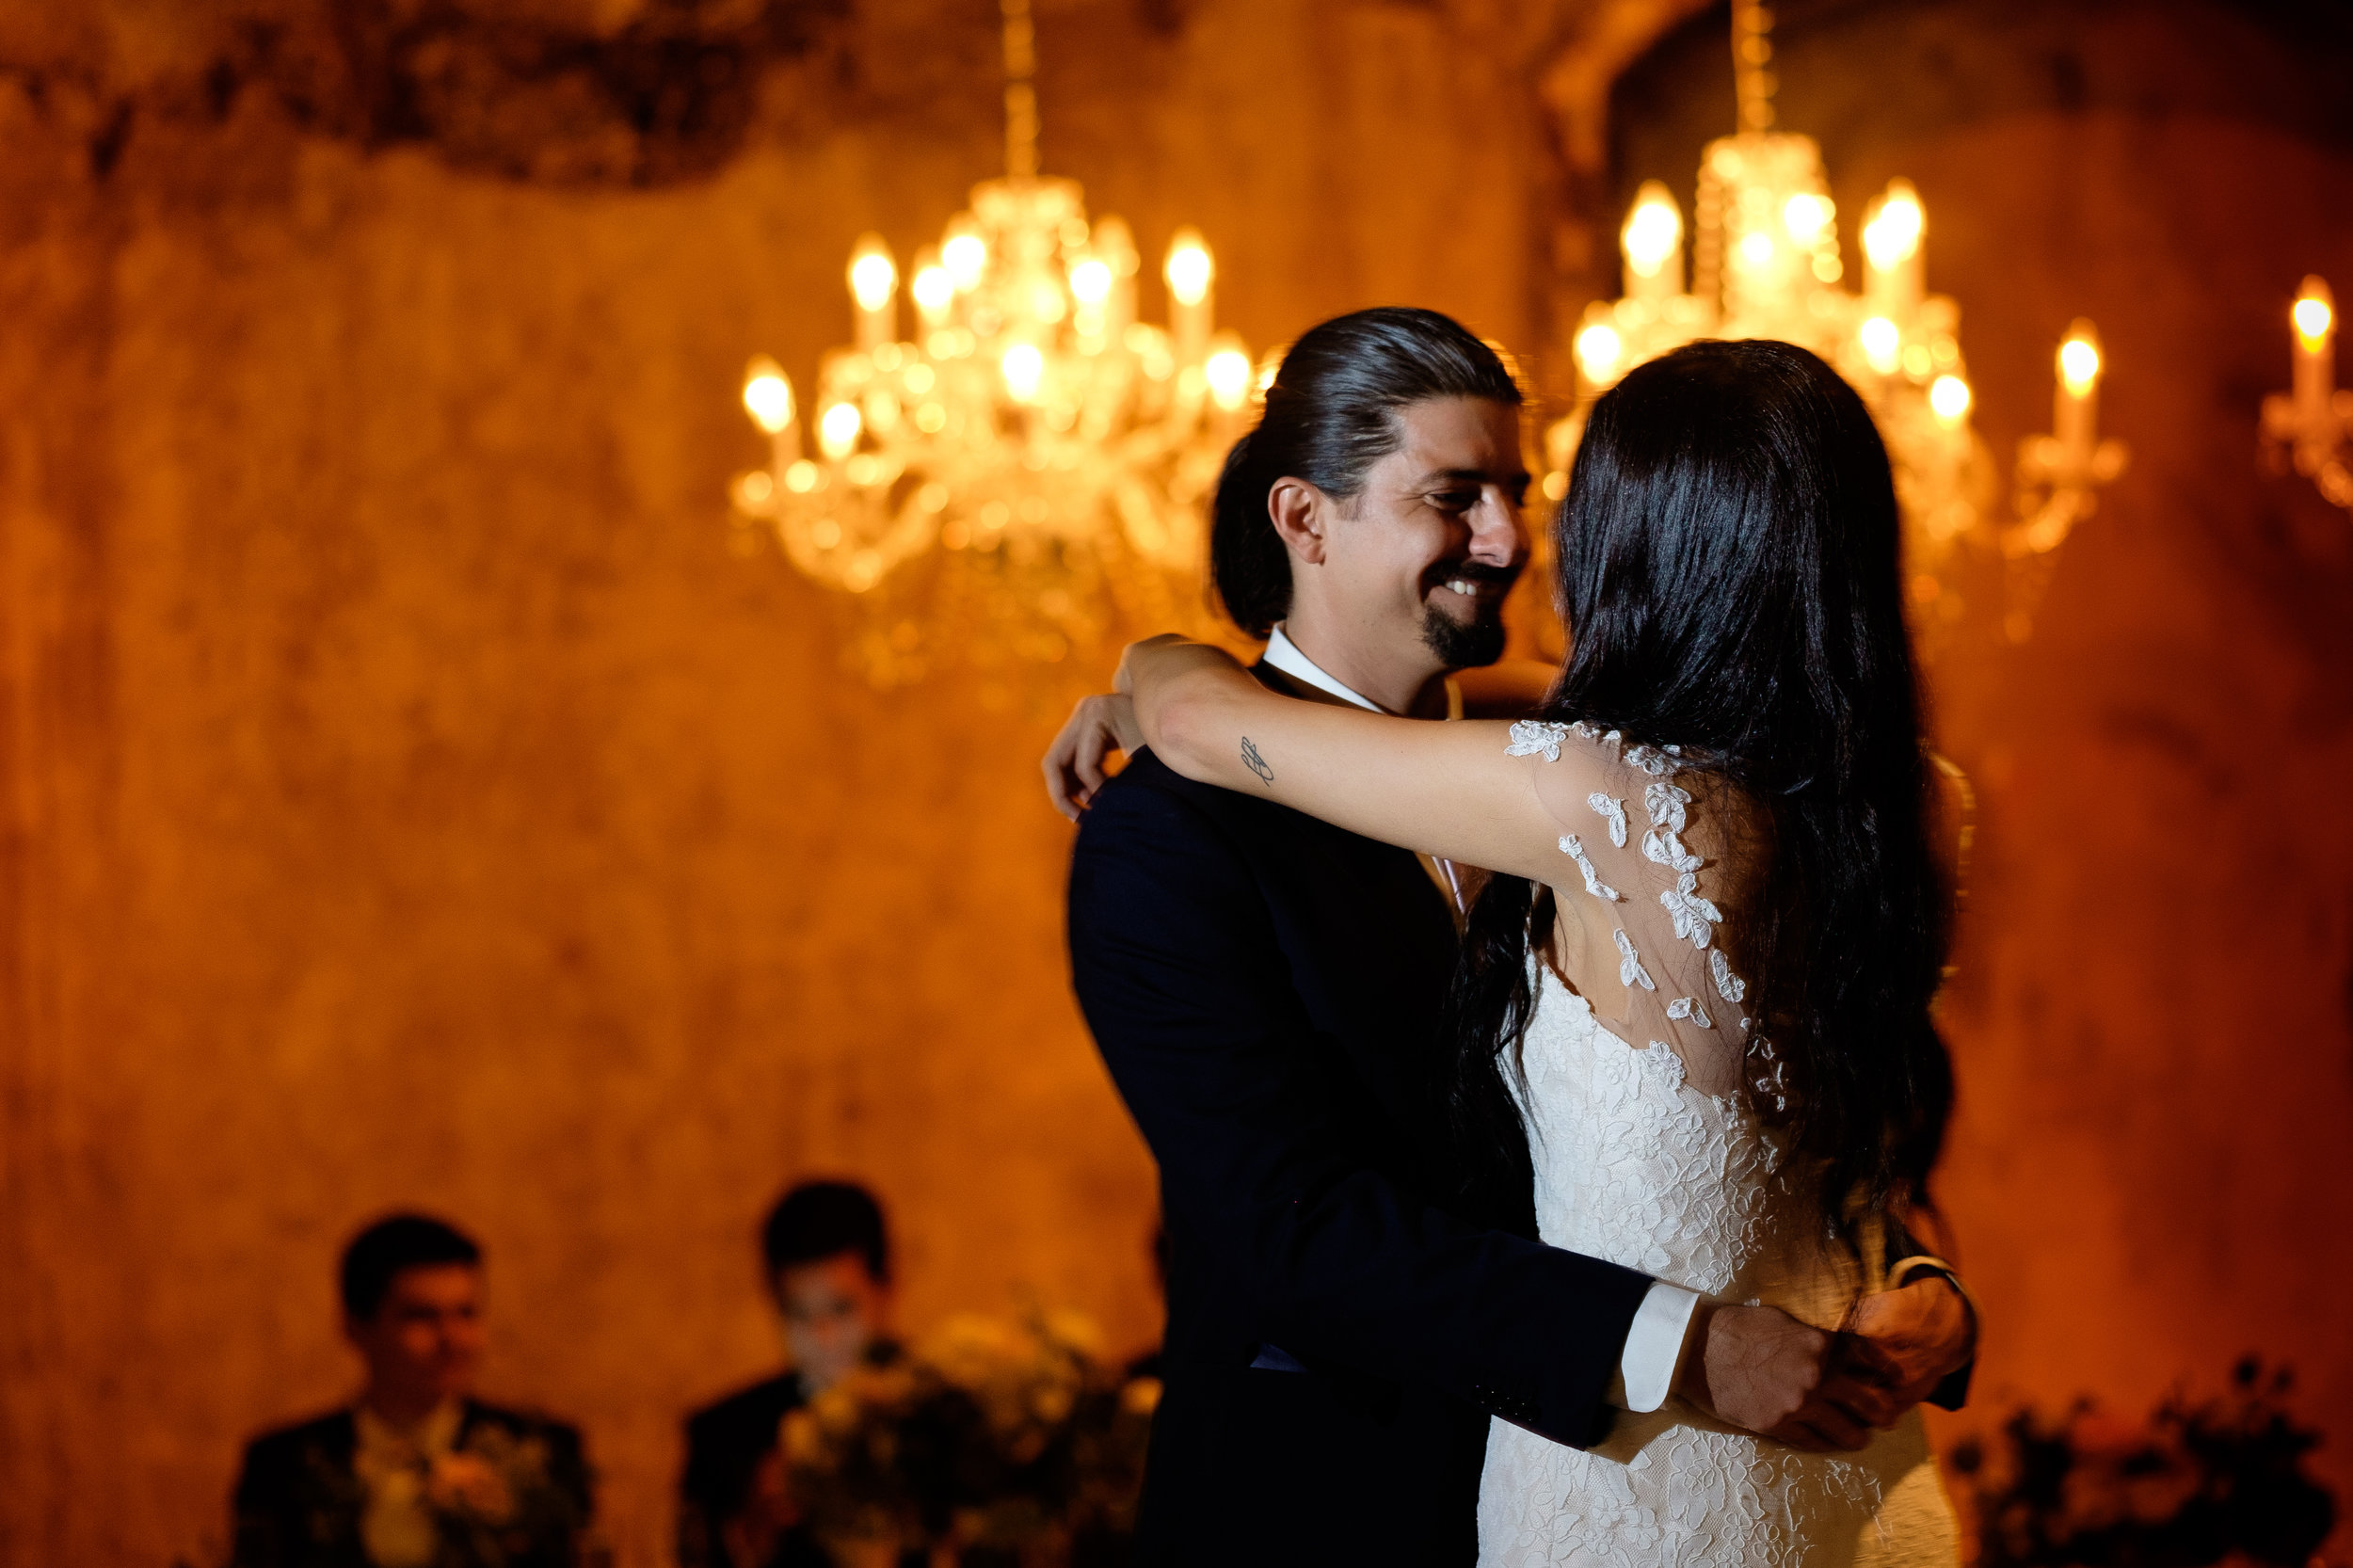 This is one of my favourite first dance images from this year, I love the contrast of the Danielle + Felipe with the warm tones in the background.  Plus, check out his expression.... that's one happy groom!